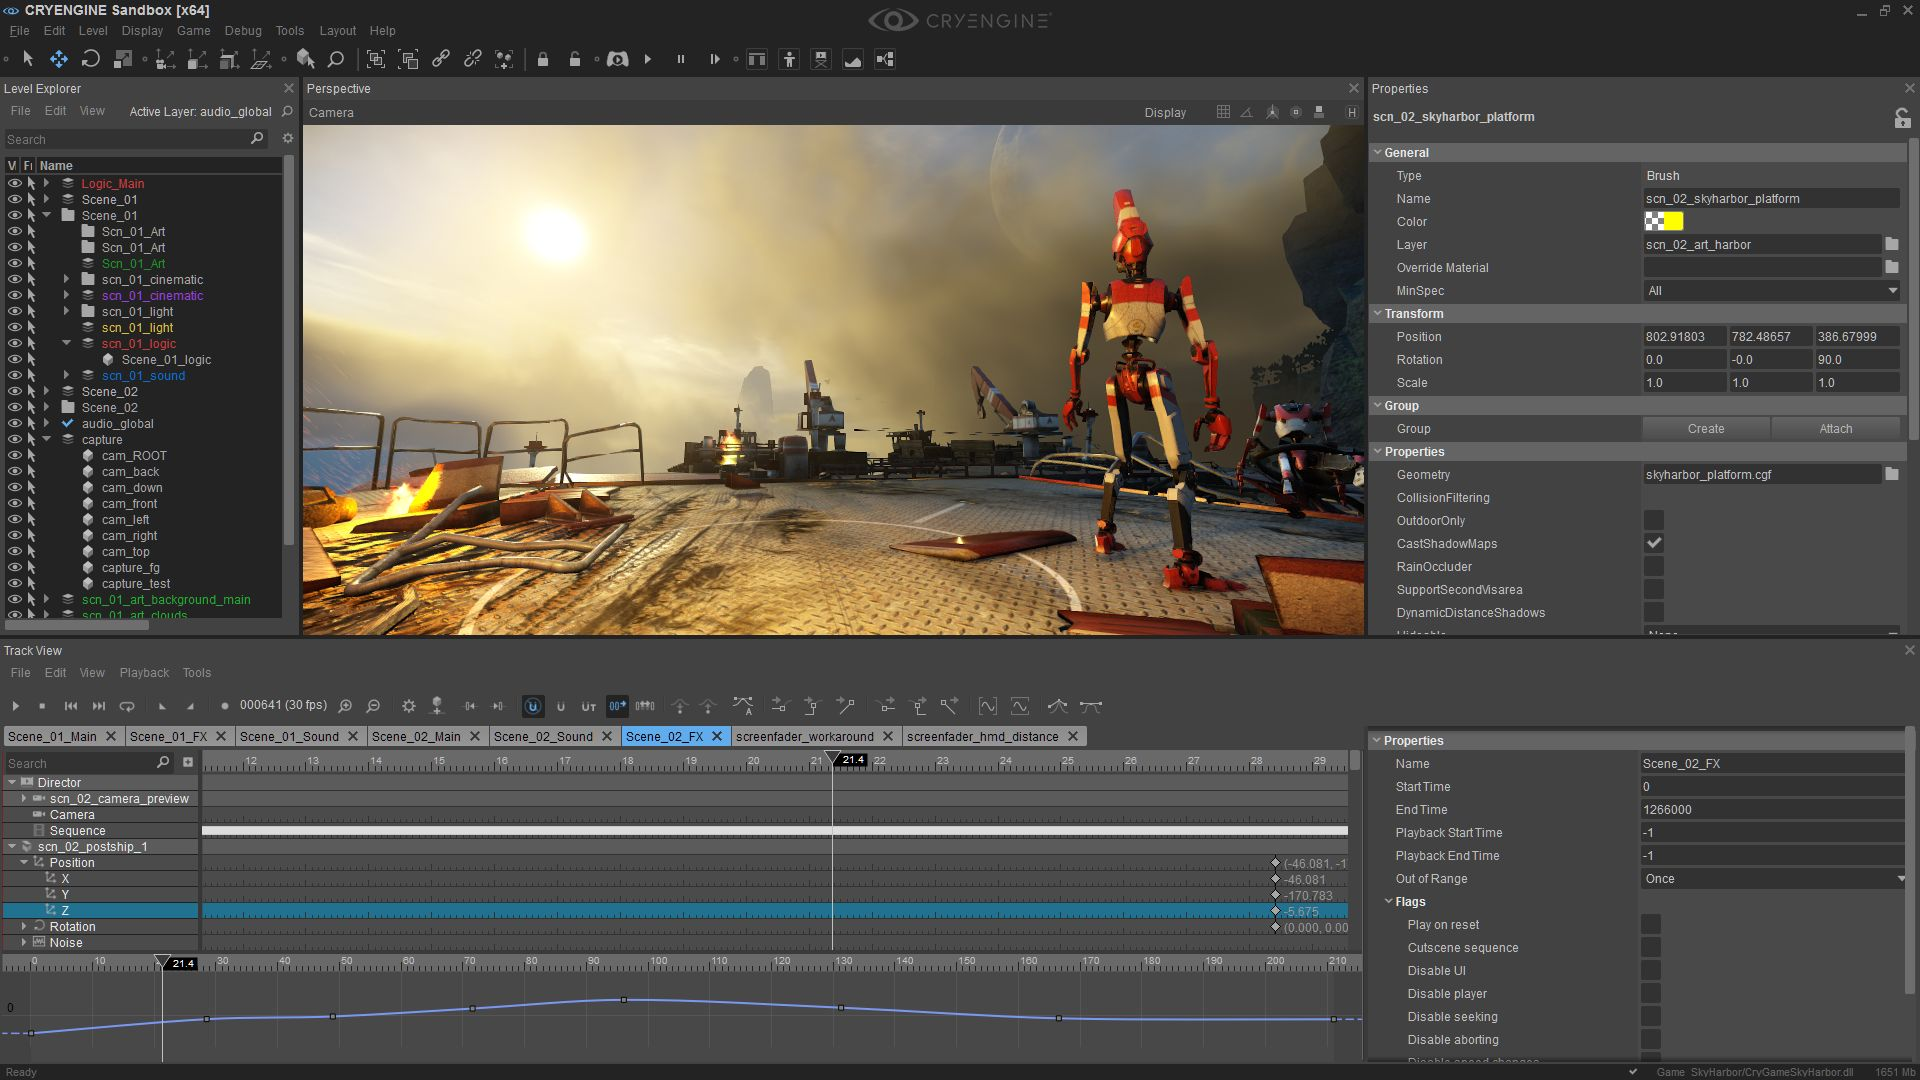 Cryengine 5 Sandbox Editor